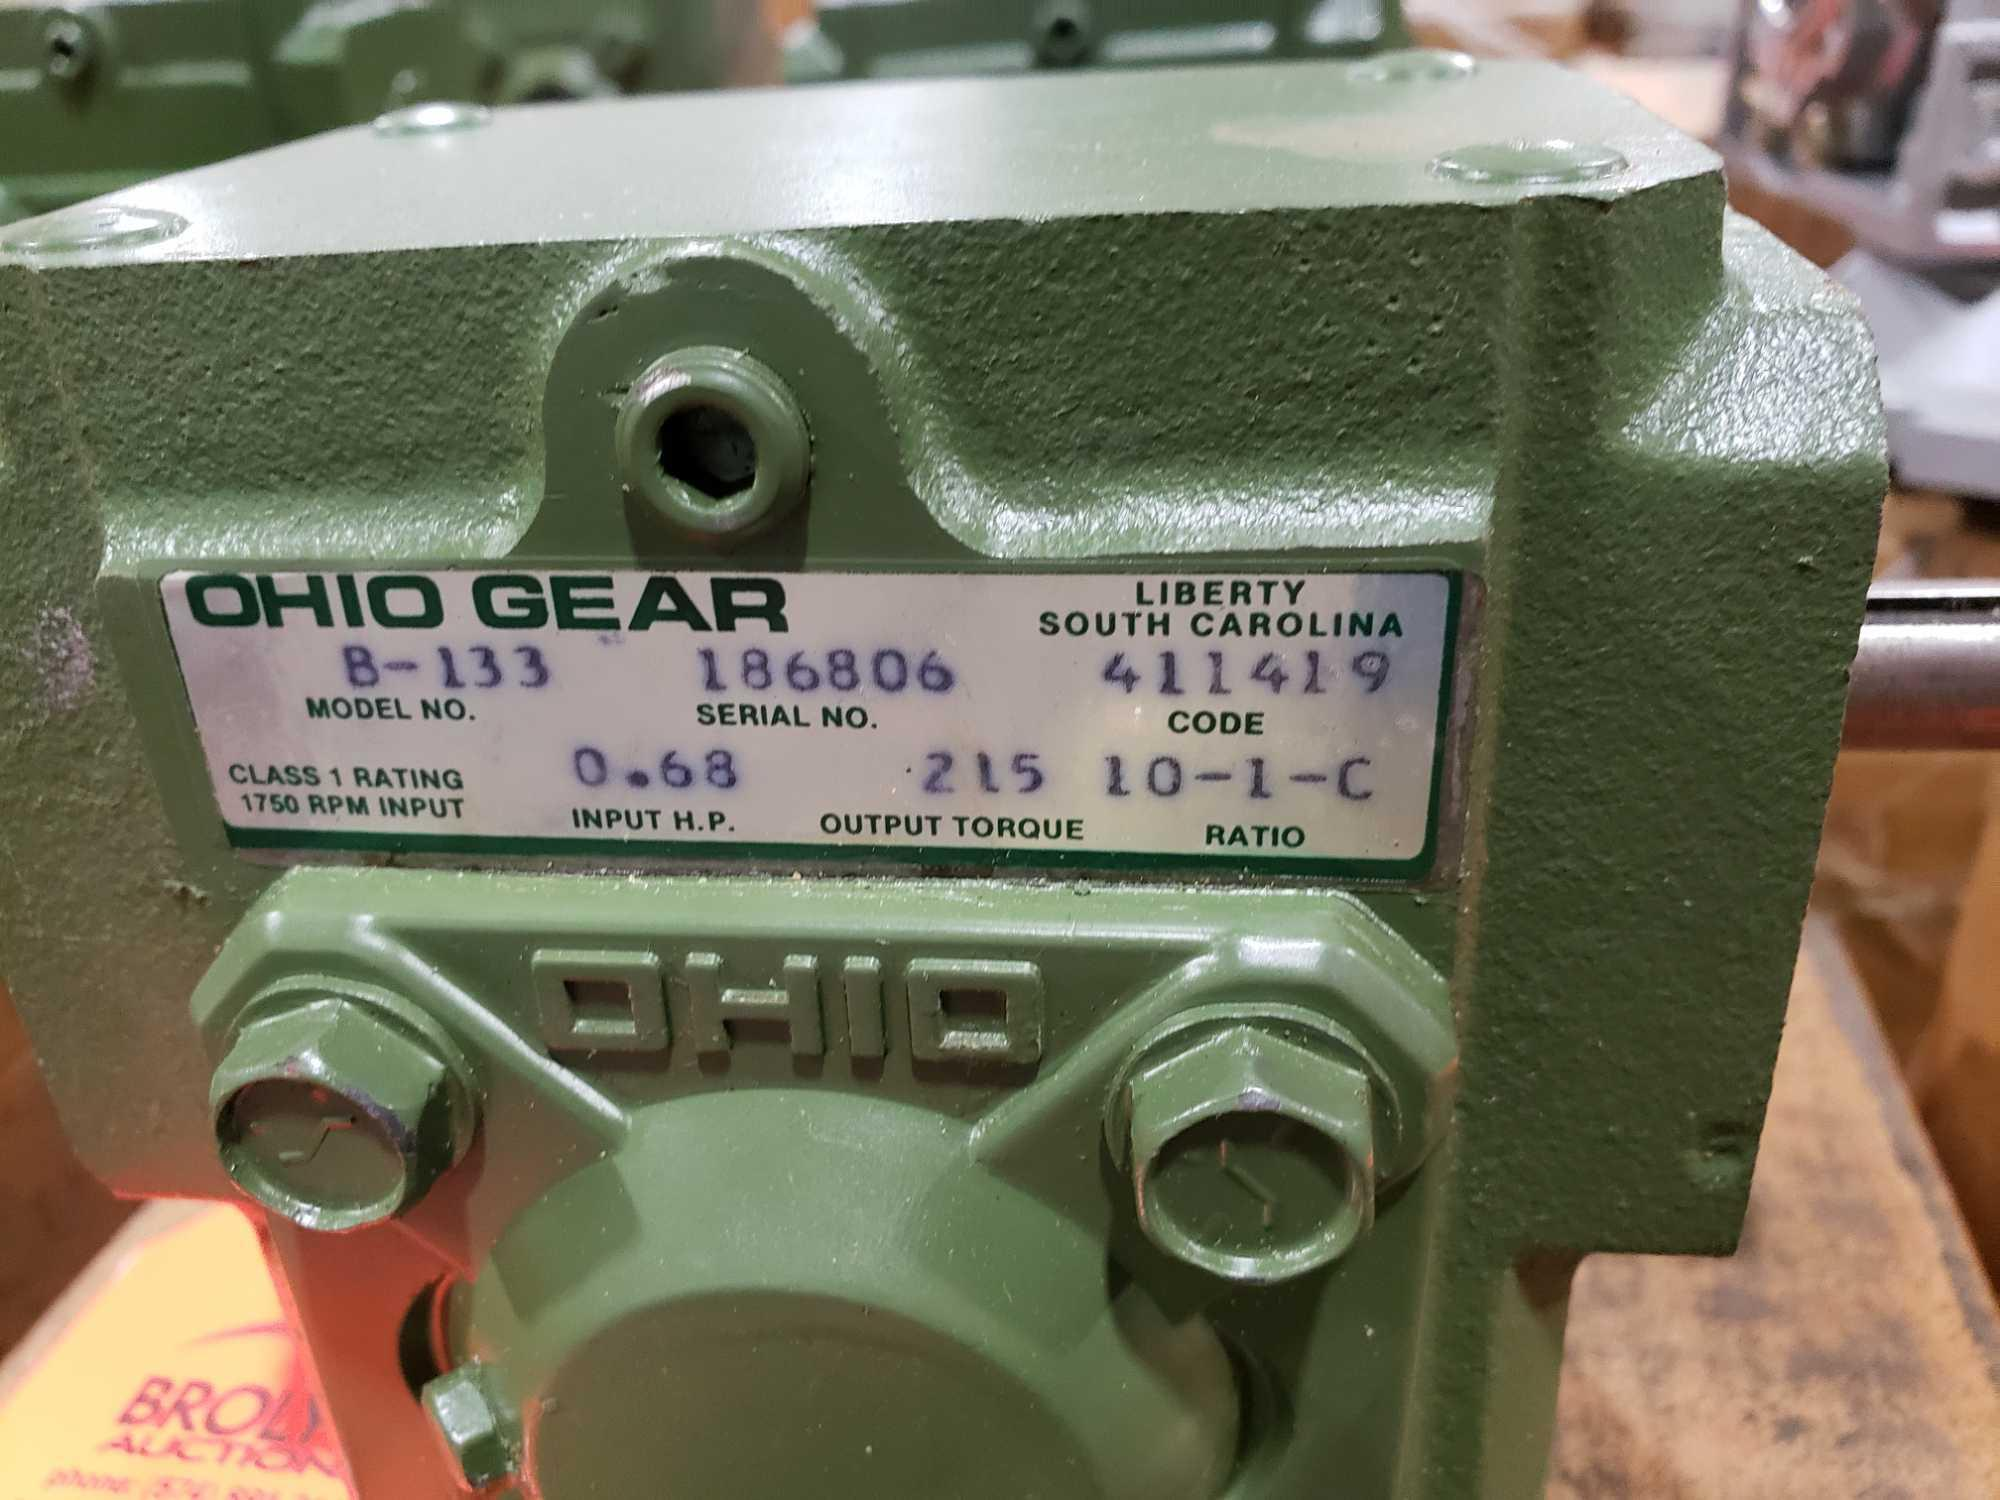 Lot 28 - Ohio Gear model B-133 gearbox. 10-1 C ratio. New in box.